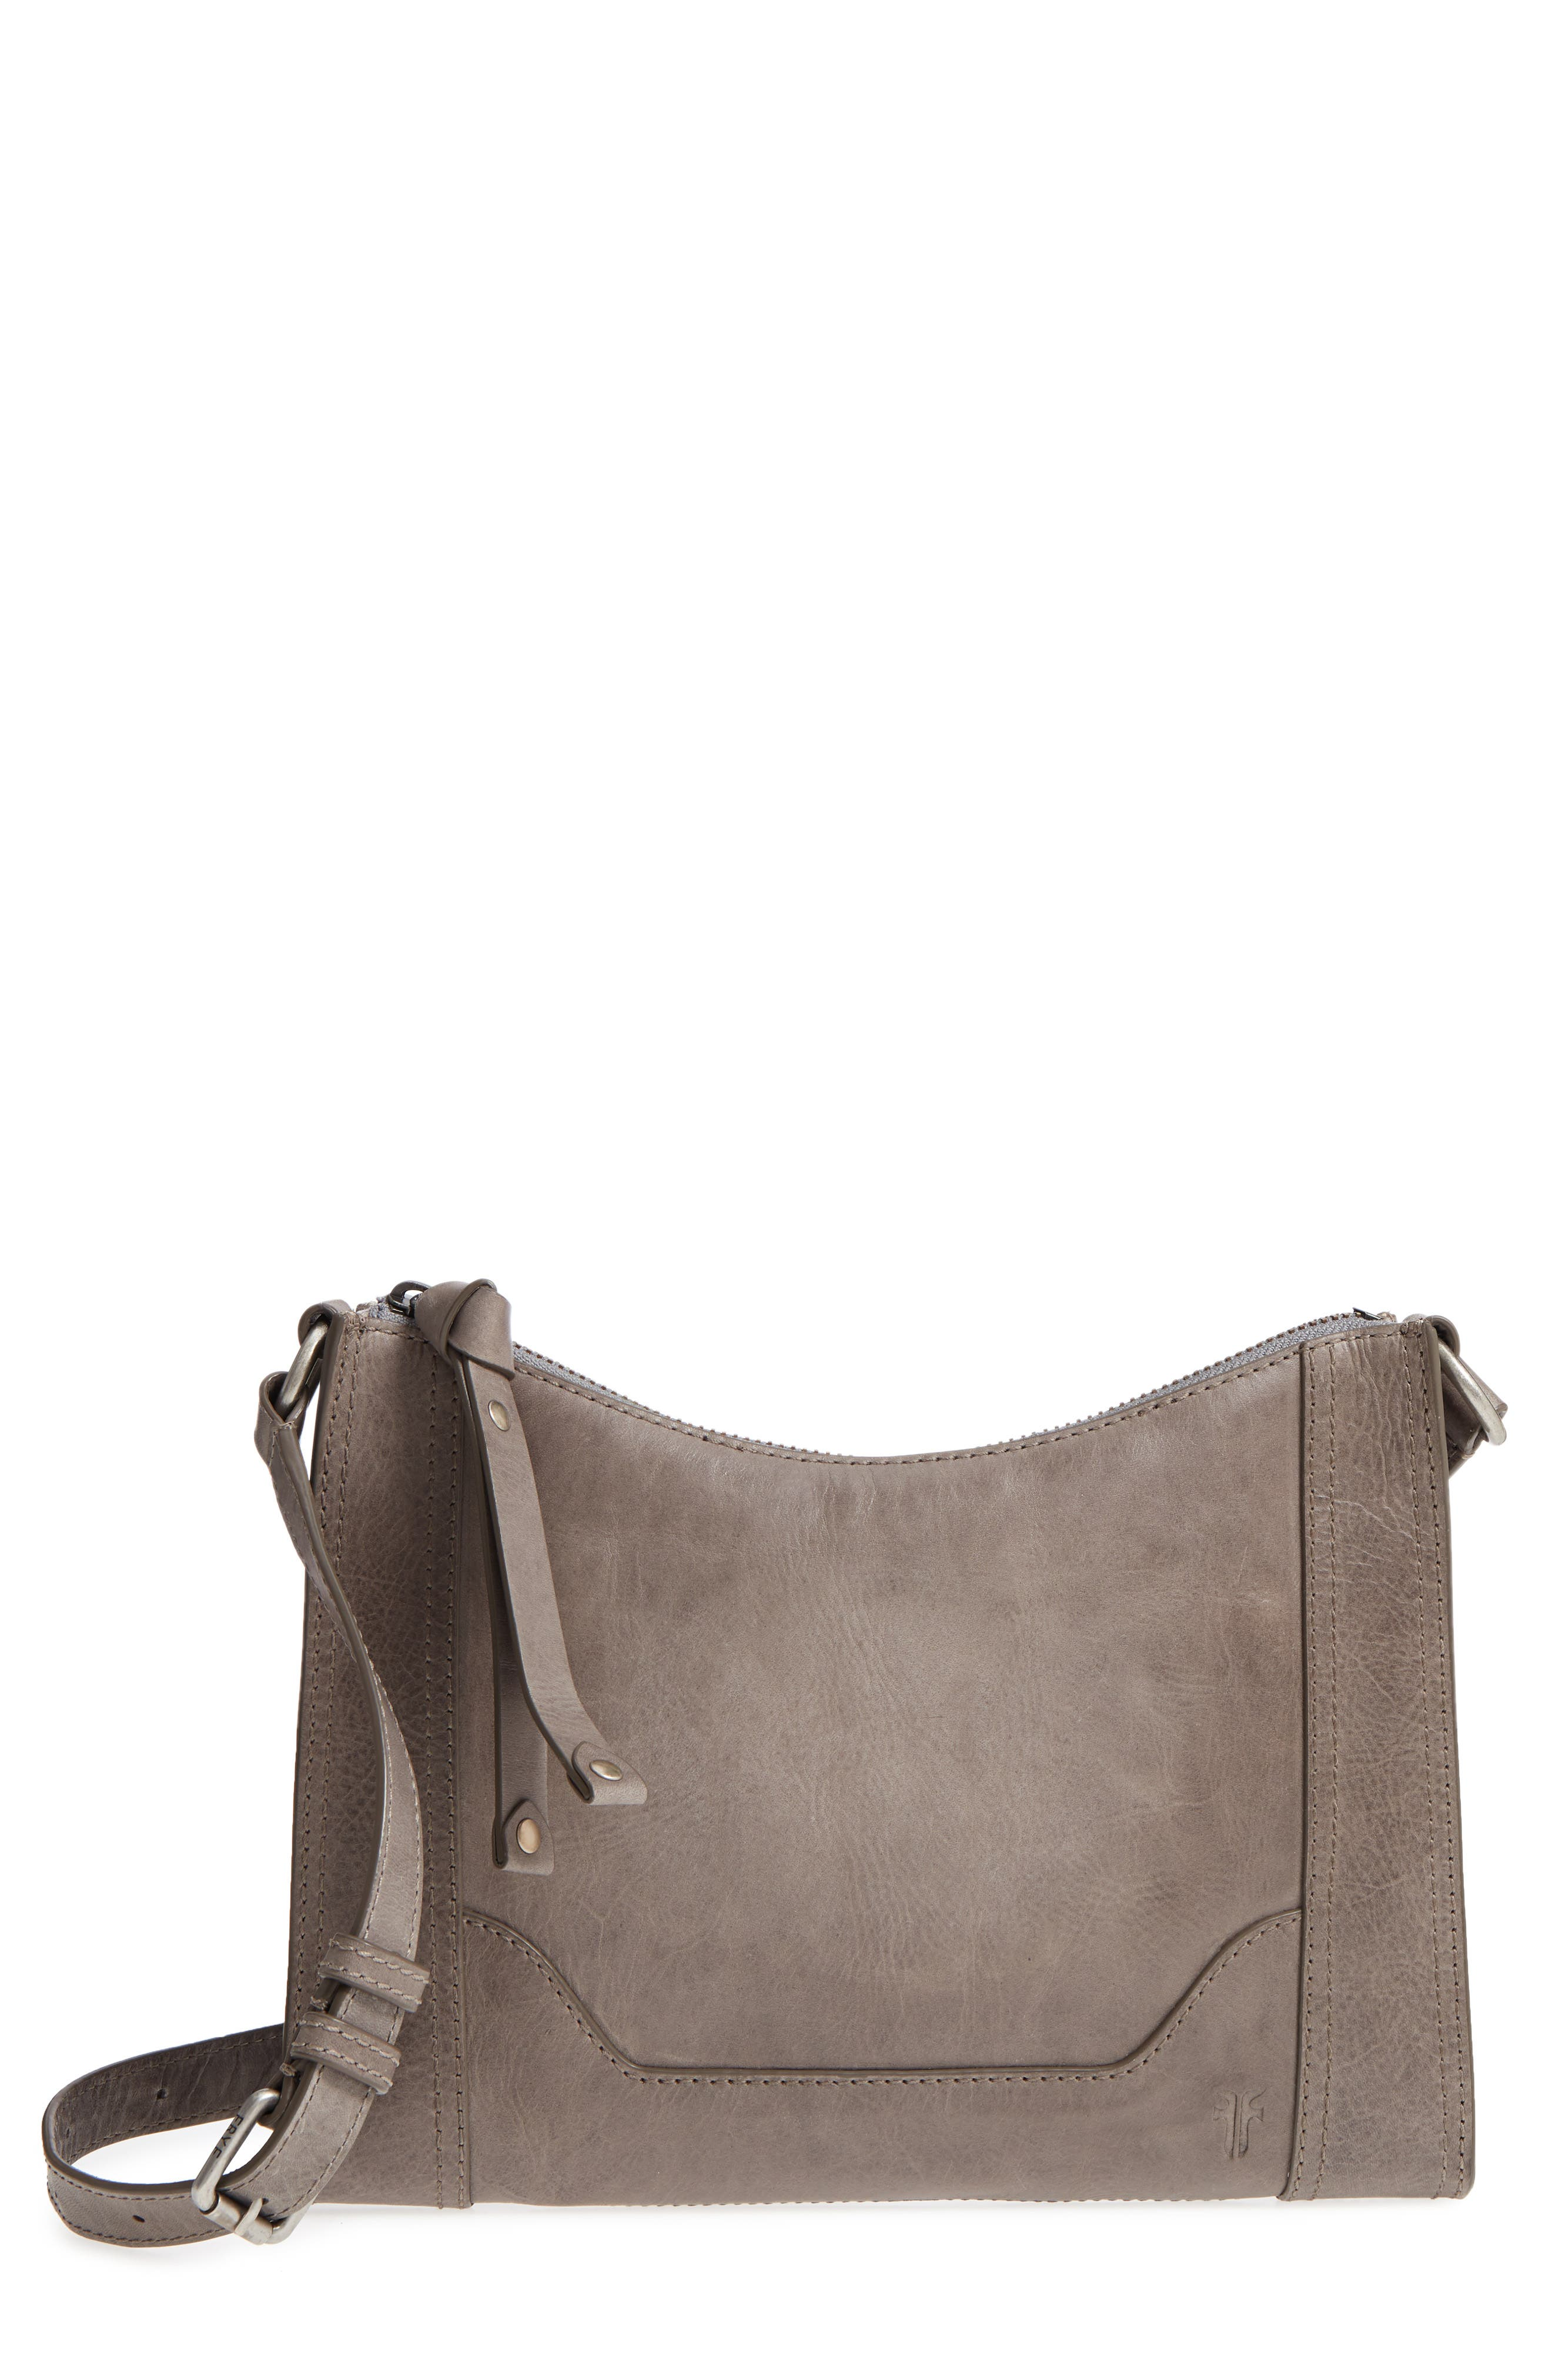 Melissa Leather Crossbody Bag,                         Main,                         color, ICE